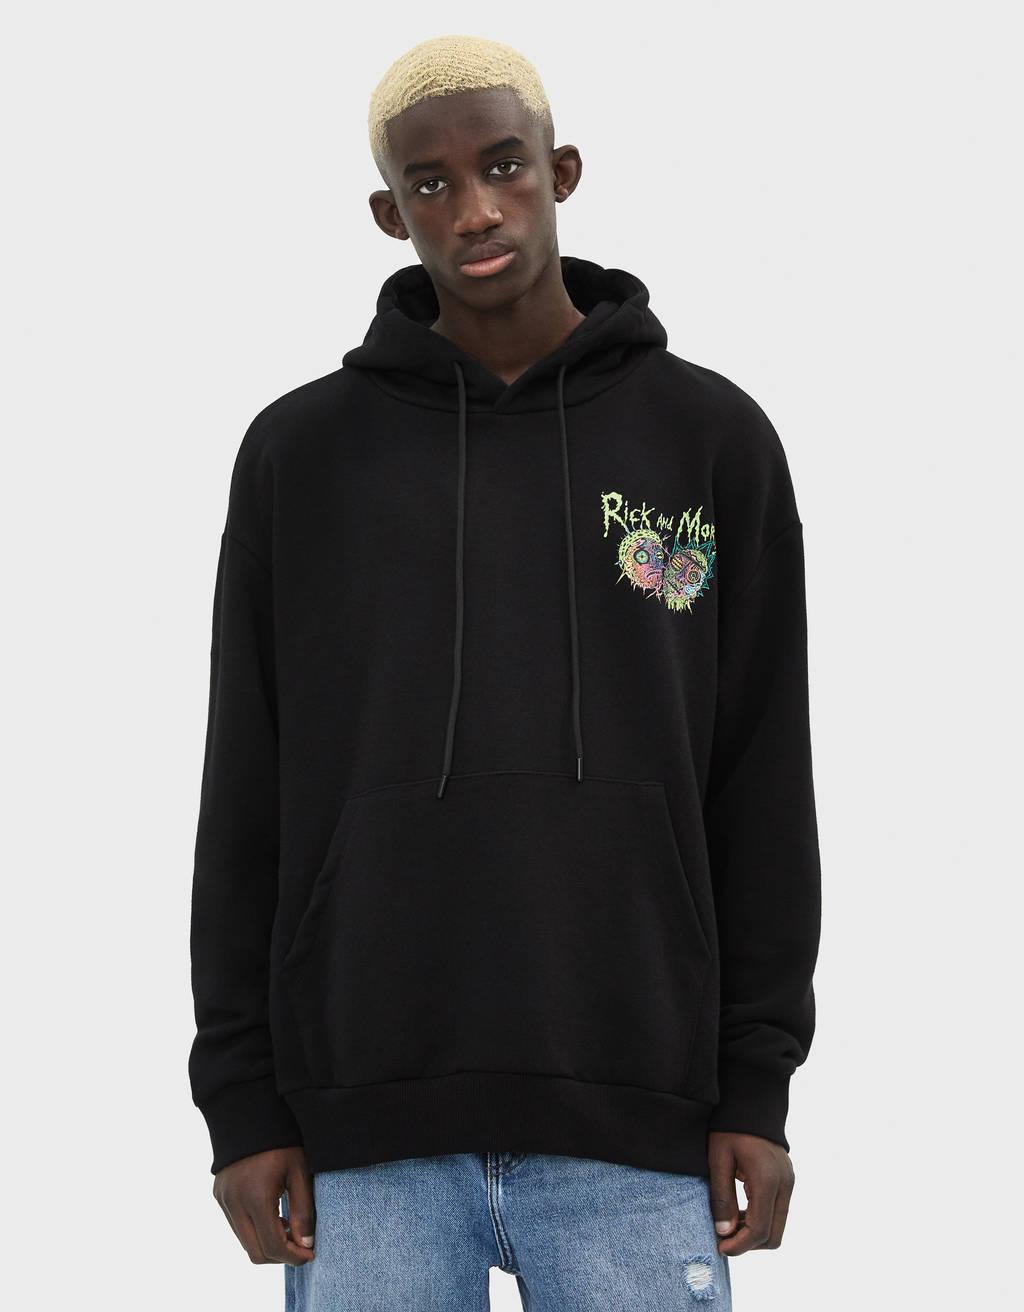 Rick & Morty sweatshirt